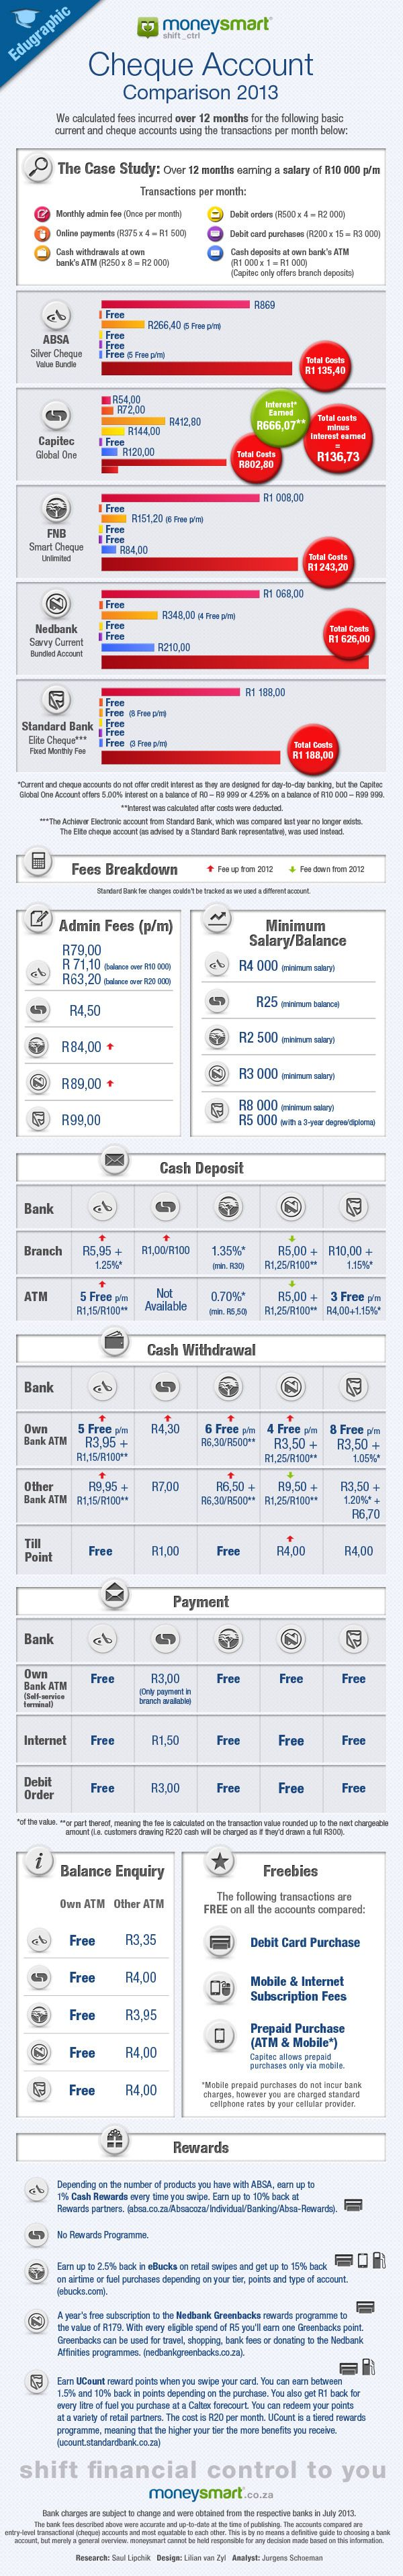 Bank Fees Infographic 2013: How Much Does Your Cheque Account Cost?